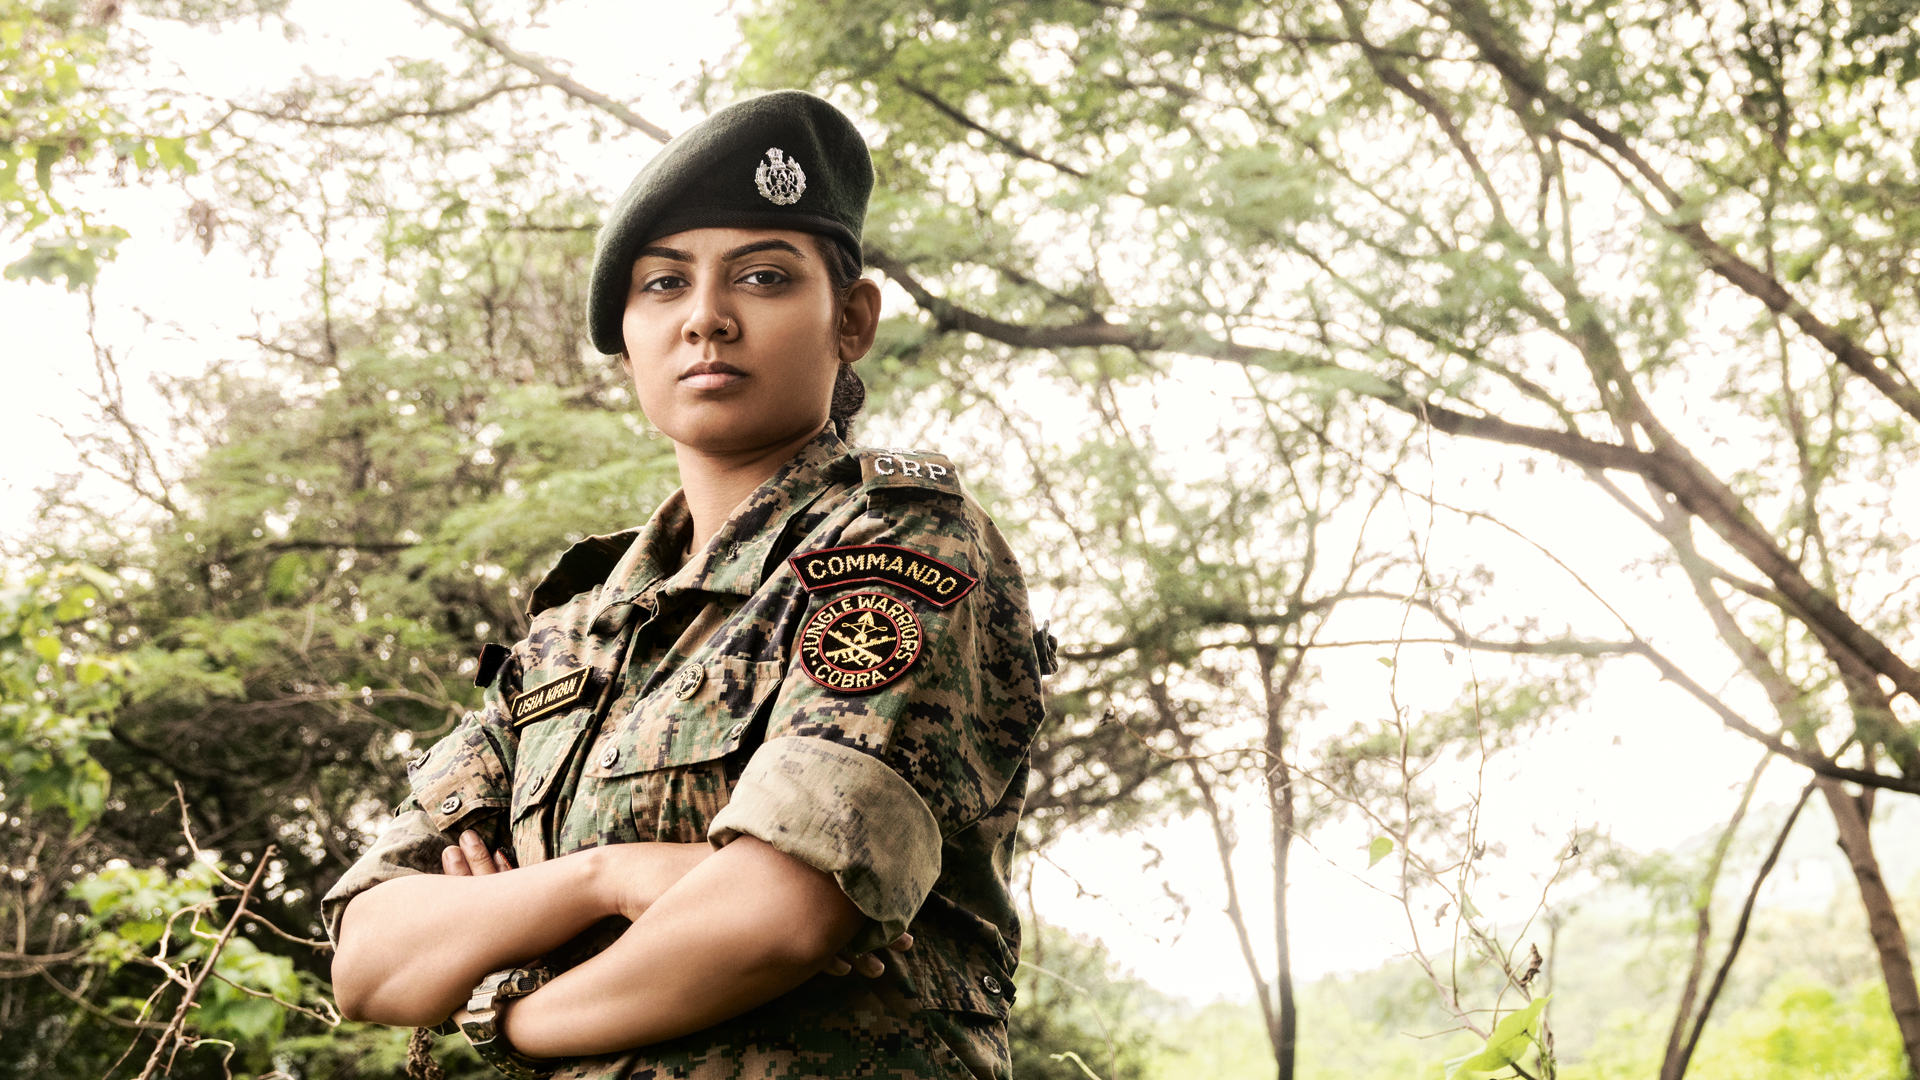 Woman commando, CoBRA commando, Commandos, Jungle Warriors CoBRA, Commando Battalion for Resolute Action, CoBRA, Usha Kiran, Miss India contest, Maoists, Tribal women, Raipur, Chhattisgarh, Regional news